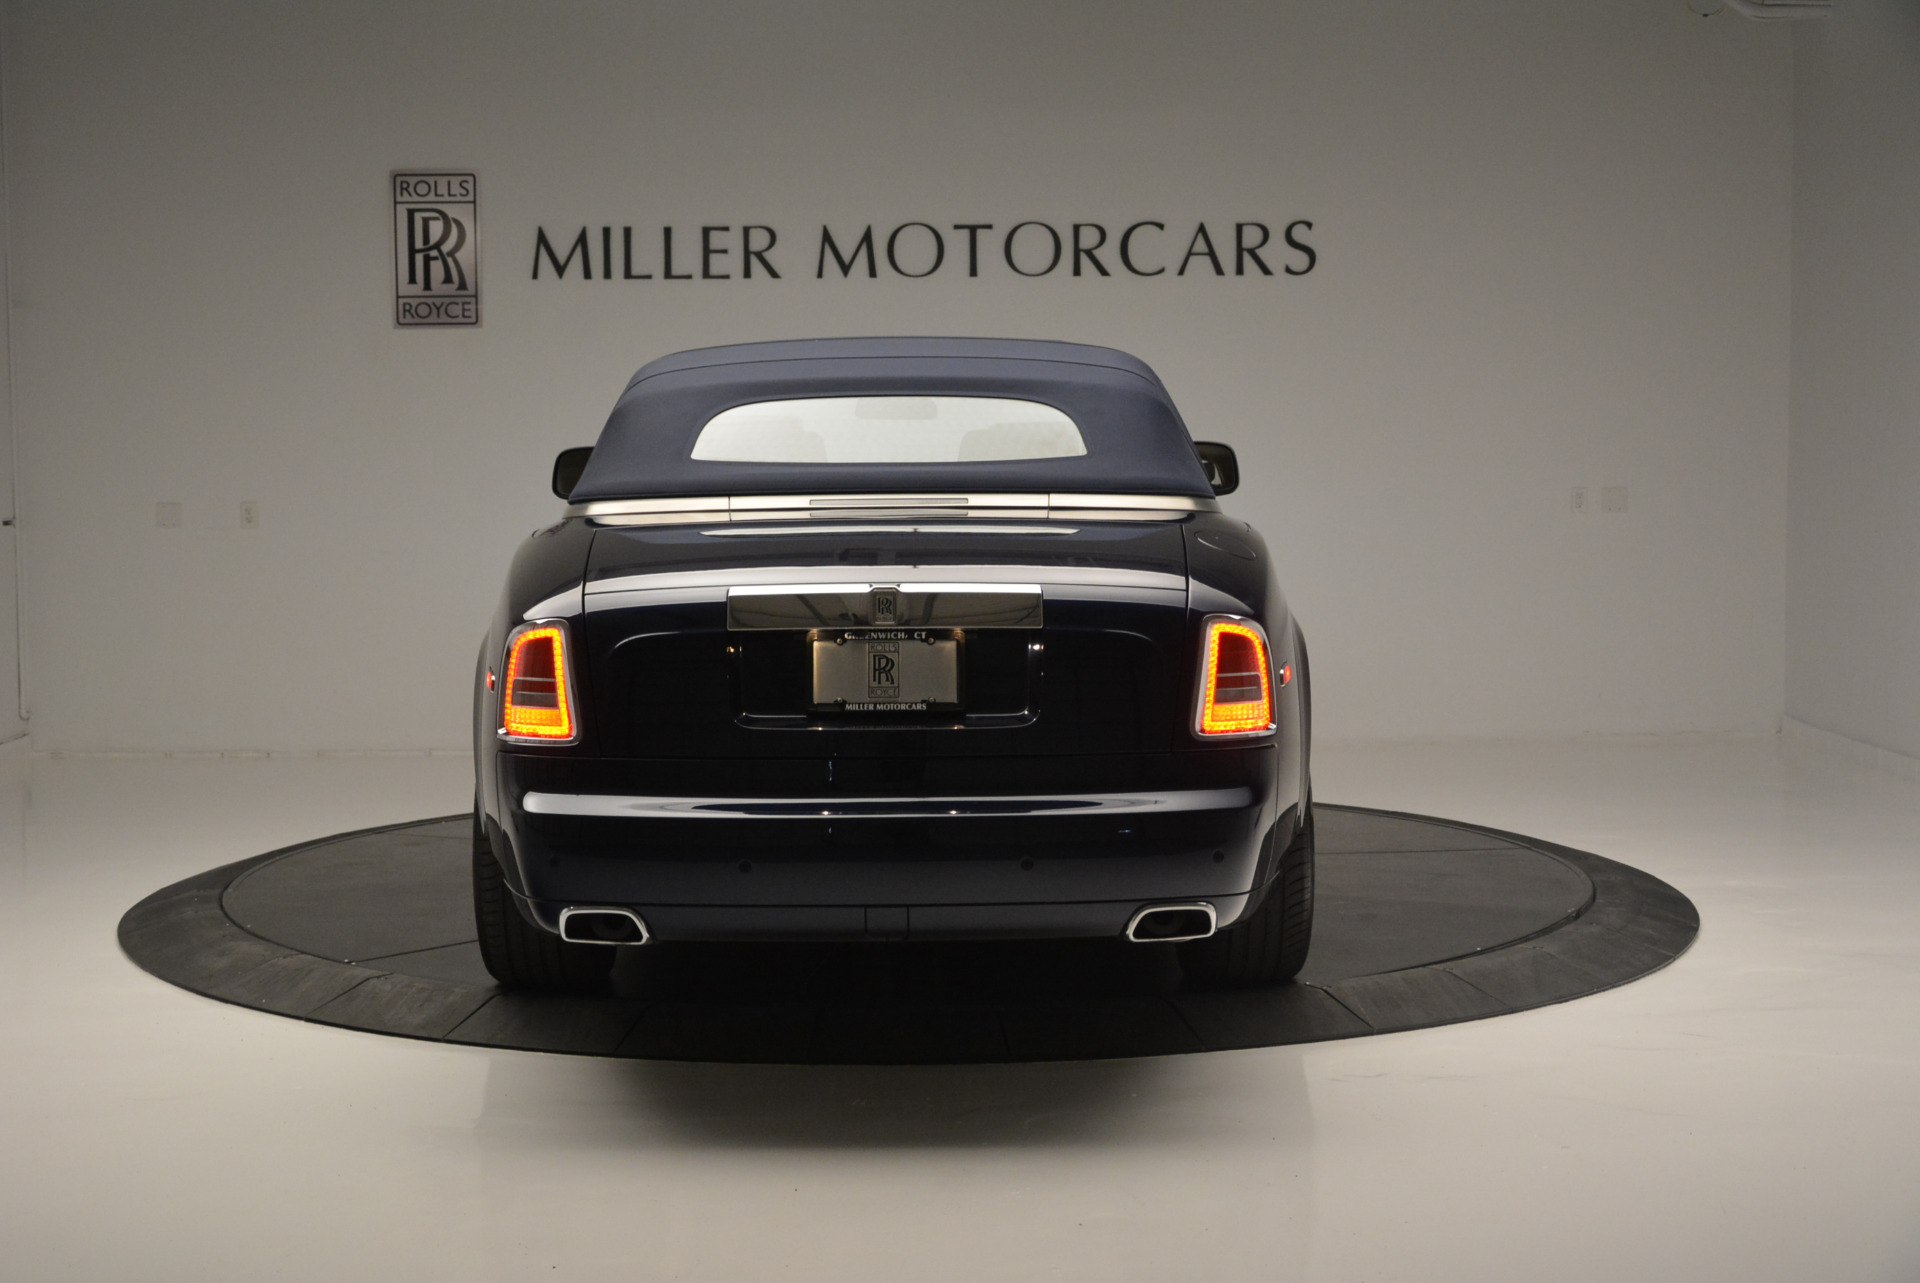 Used 2014 Rolls-Royce Phantom Drophead Coupe  For Sale In Greenwich, CT. Alfa Romeo of Greenwich, 7644 2356_p12